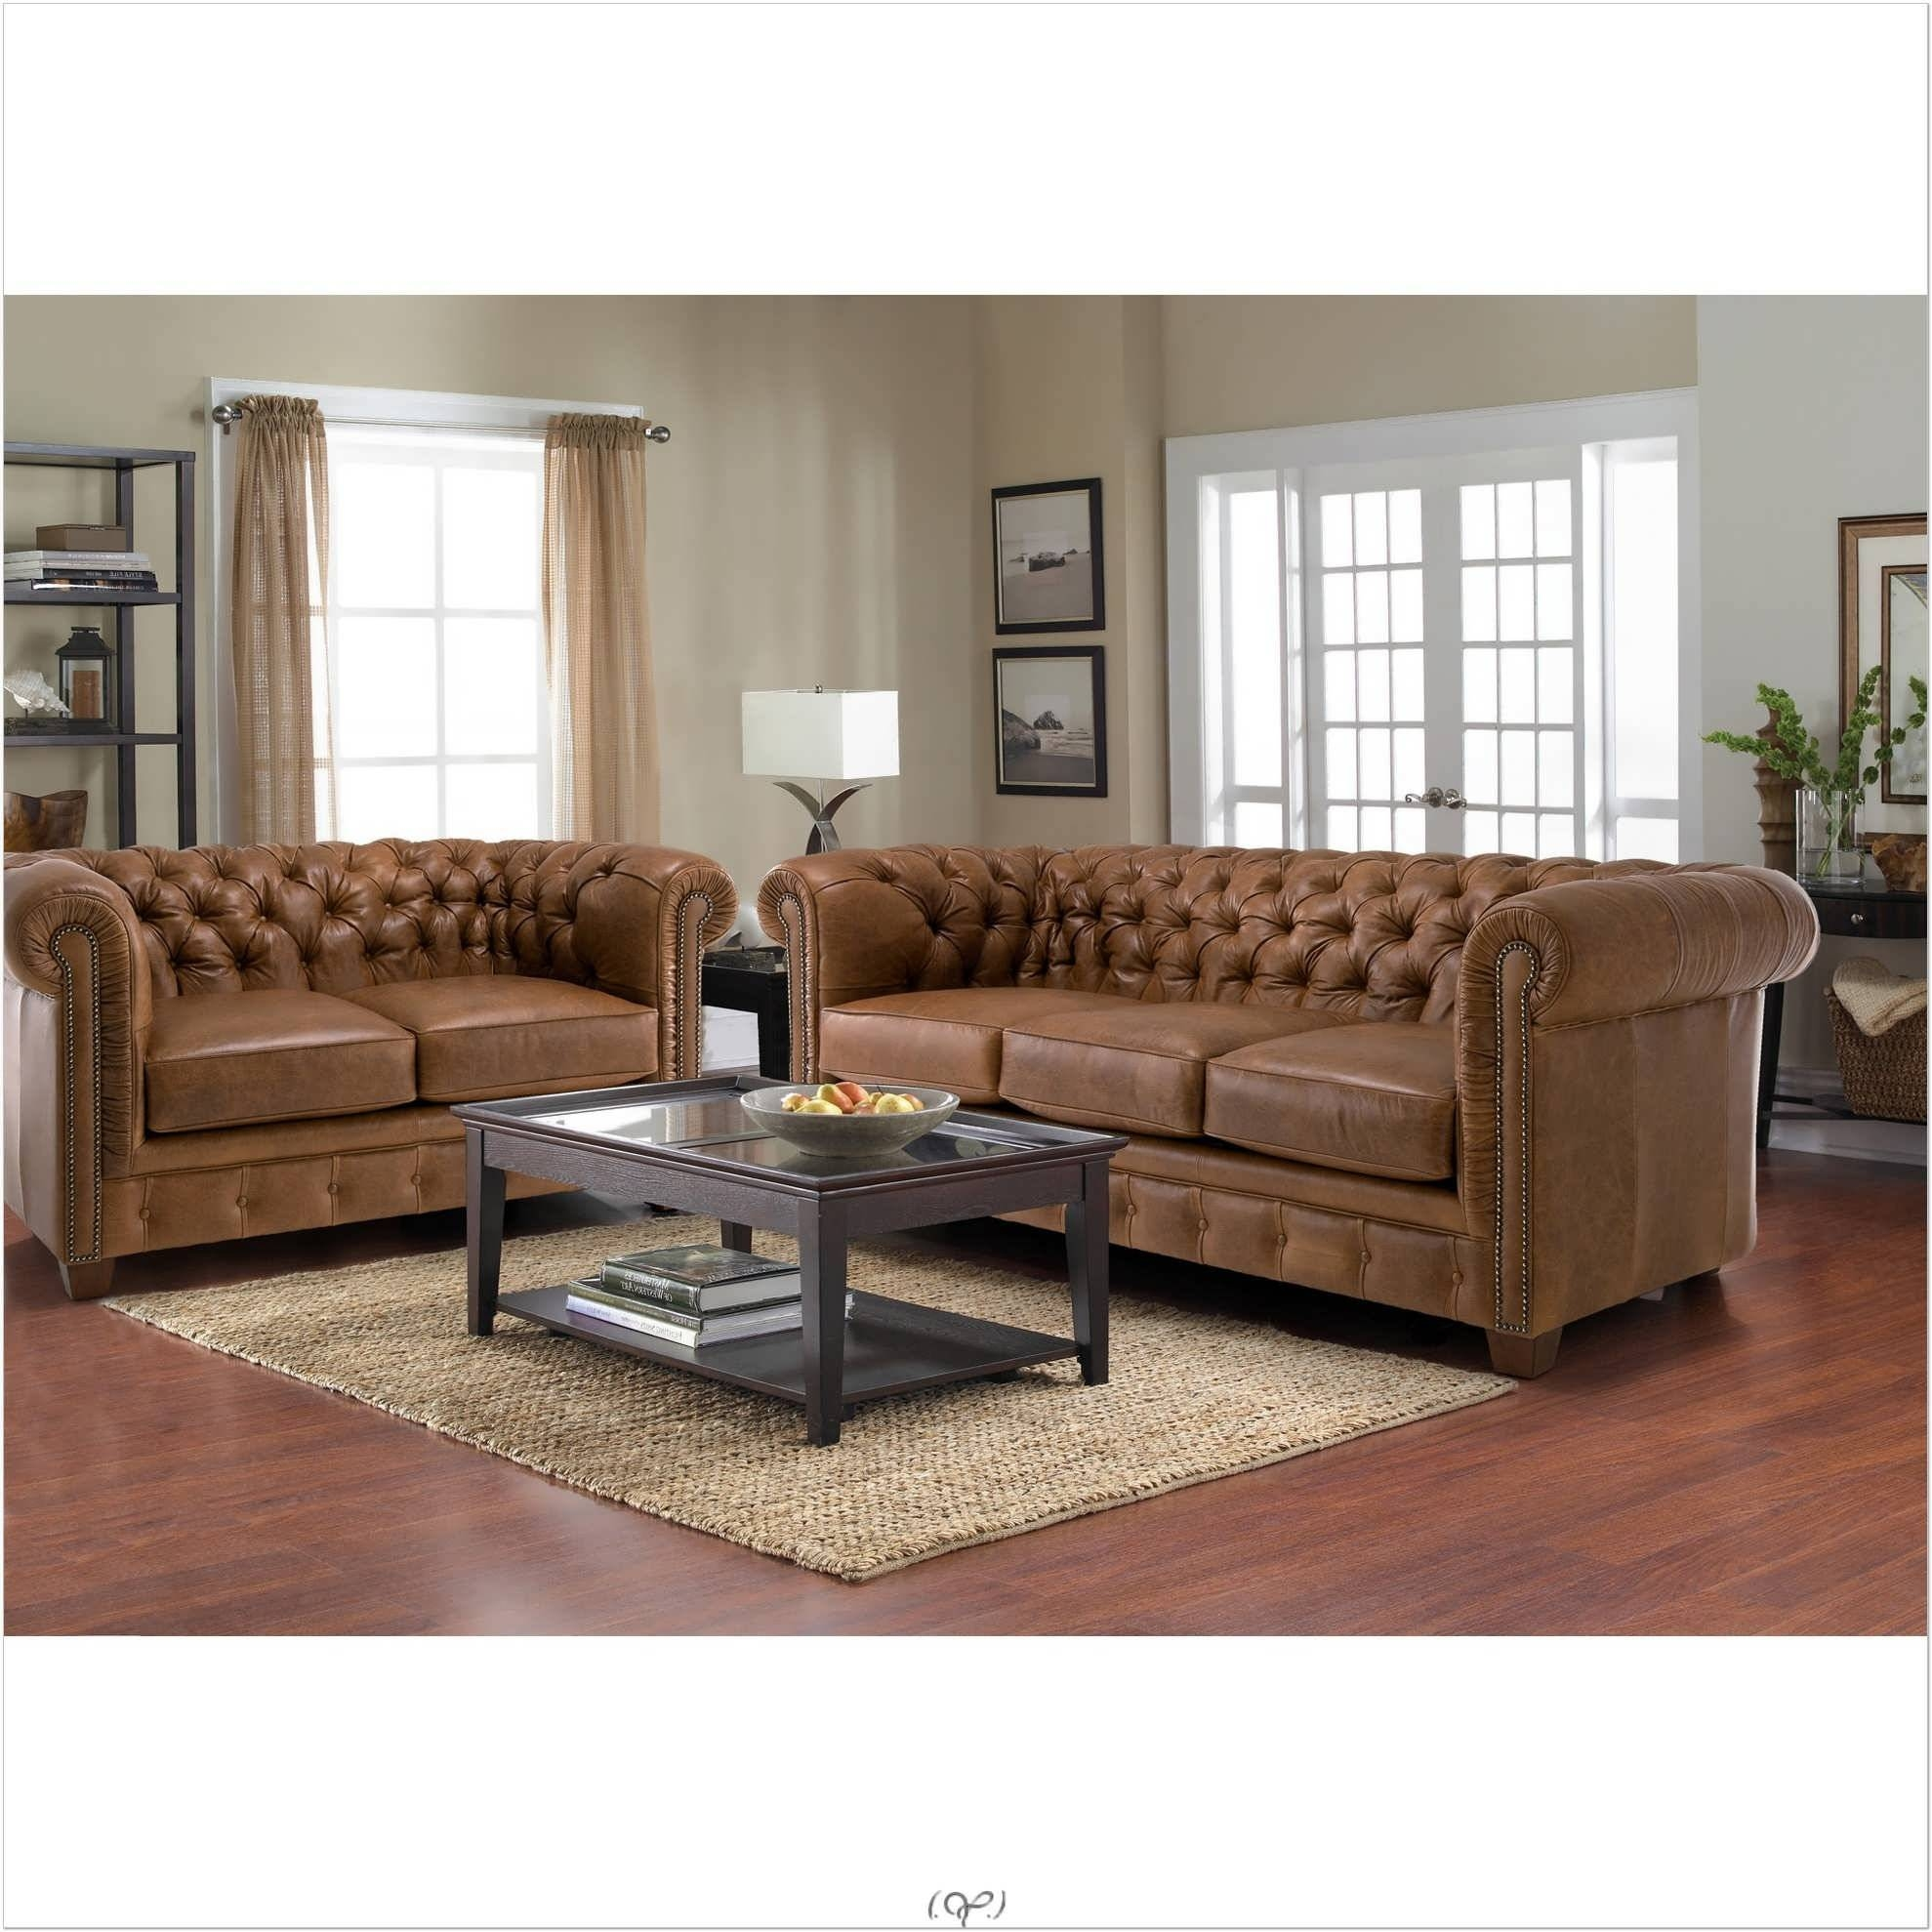 Sofa : Sofa Table Chaise Sofa Dinette Sets Leather Couch Country intended for Country Style Sofas (Image 13 of 15)